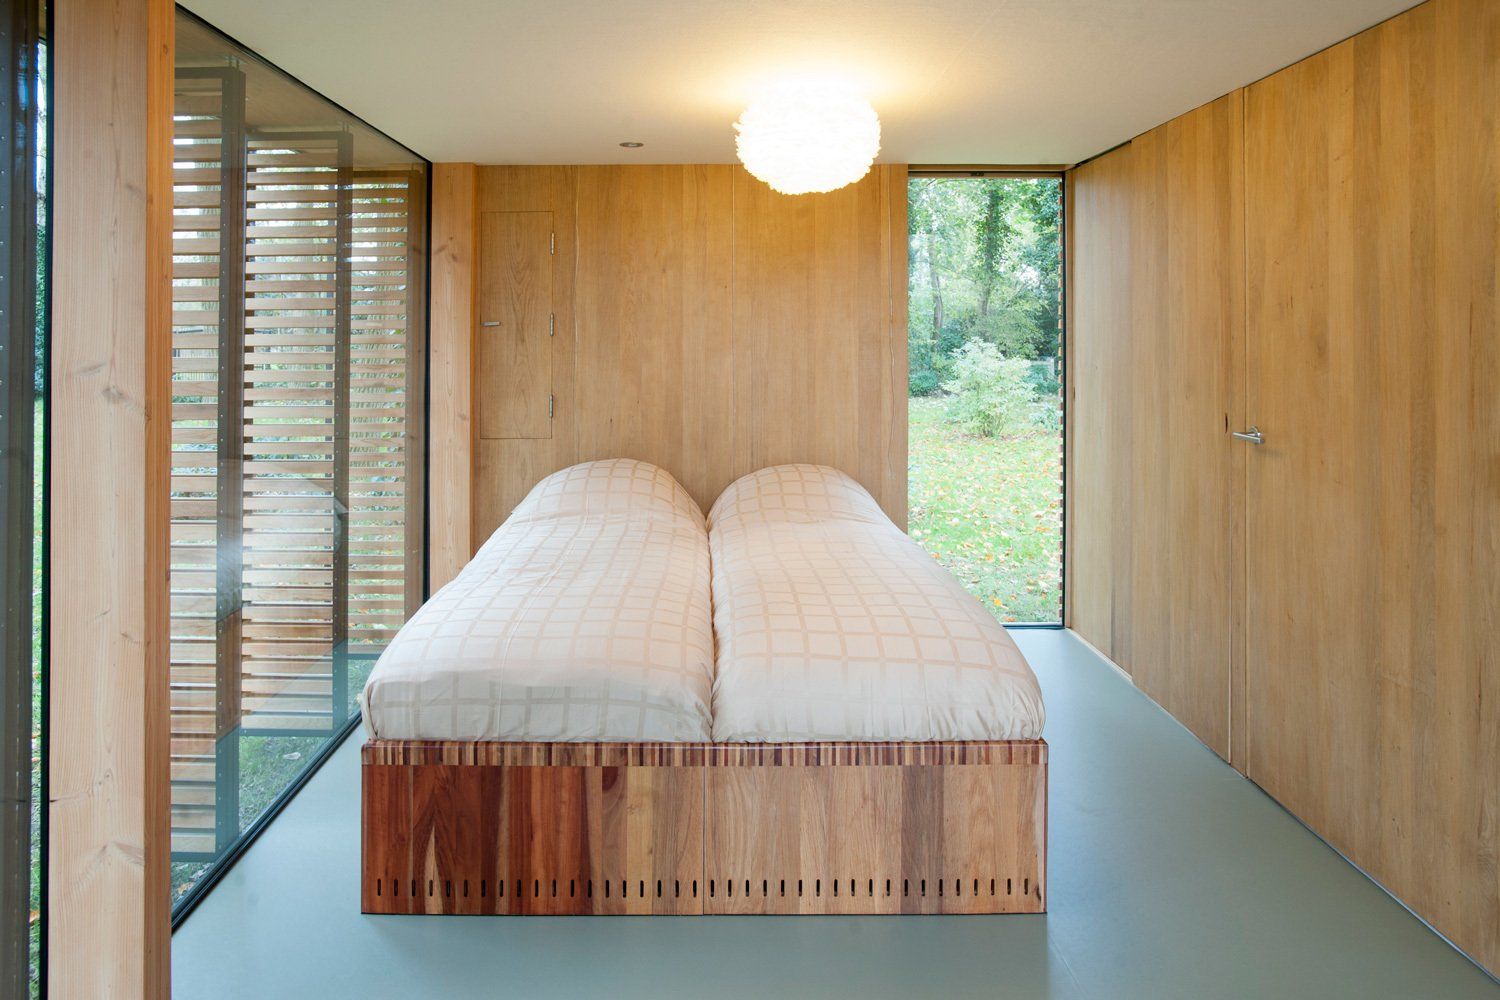 Bedroom, Bed, and Ceiling Lighting Light breaks through the bedroom's north wall through a vertical window that cuts from the floor up past the second floor mezzanine to the roof's ridgeline. The bed is custom.  Utrecht Cabin by Laura C. Mallonee